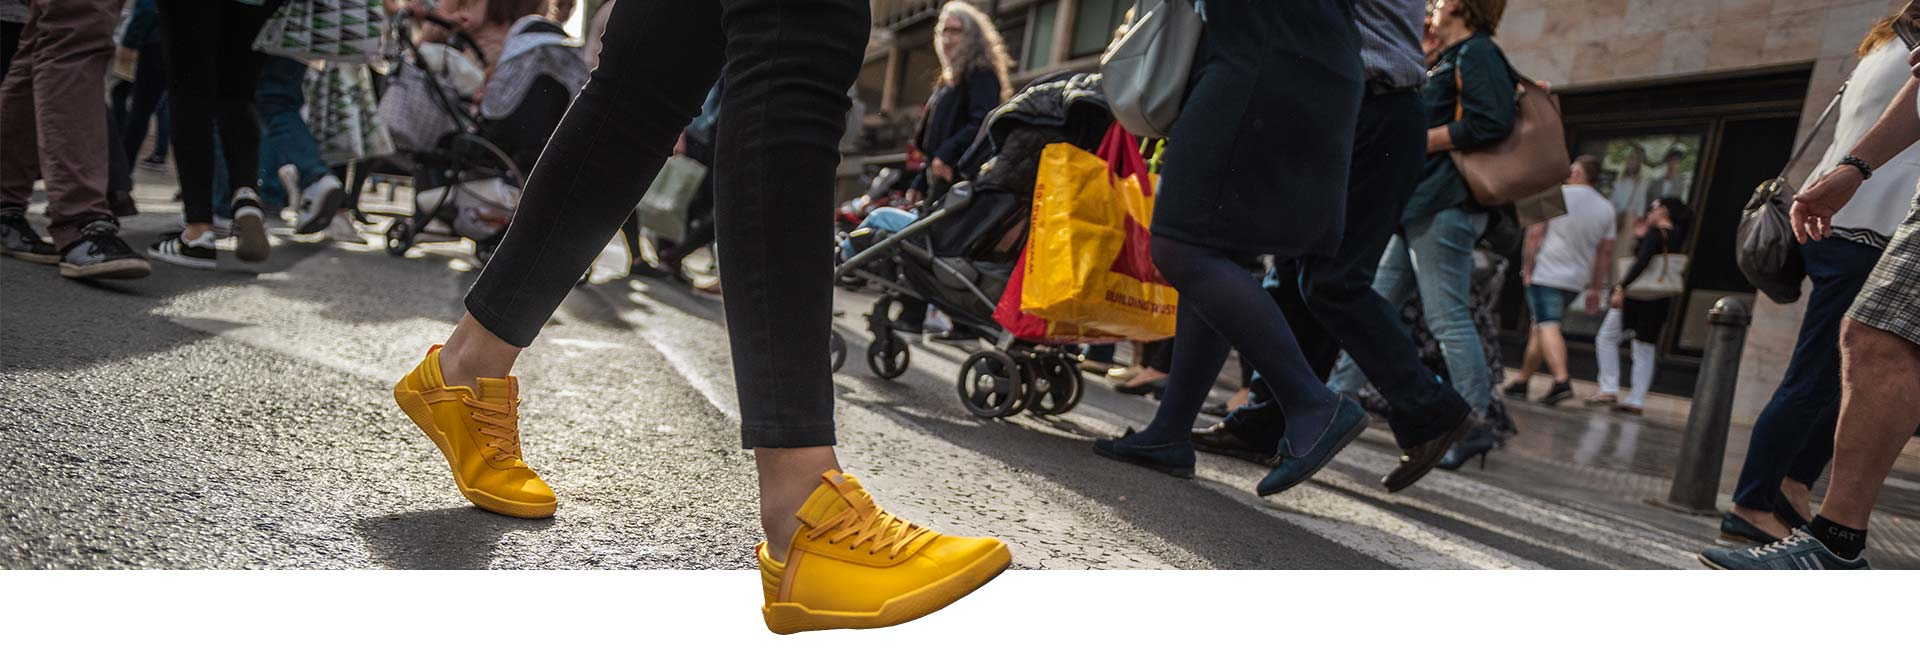 Yellow Code sneakers walking down a busy city street.